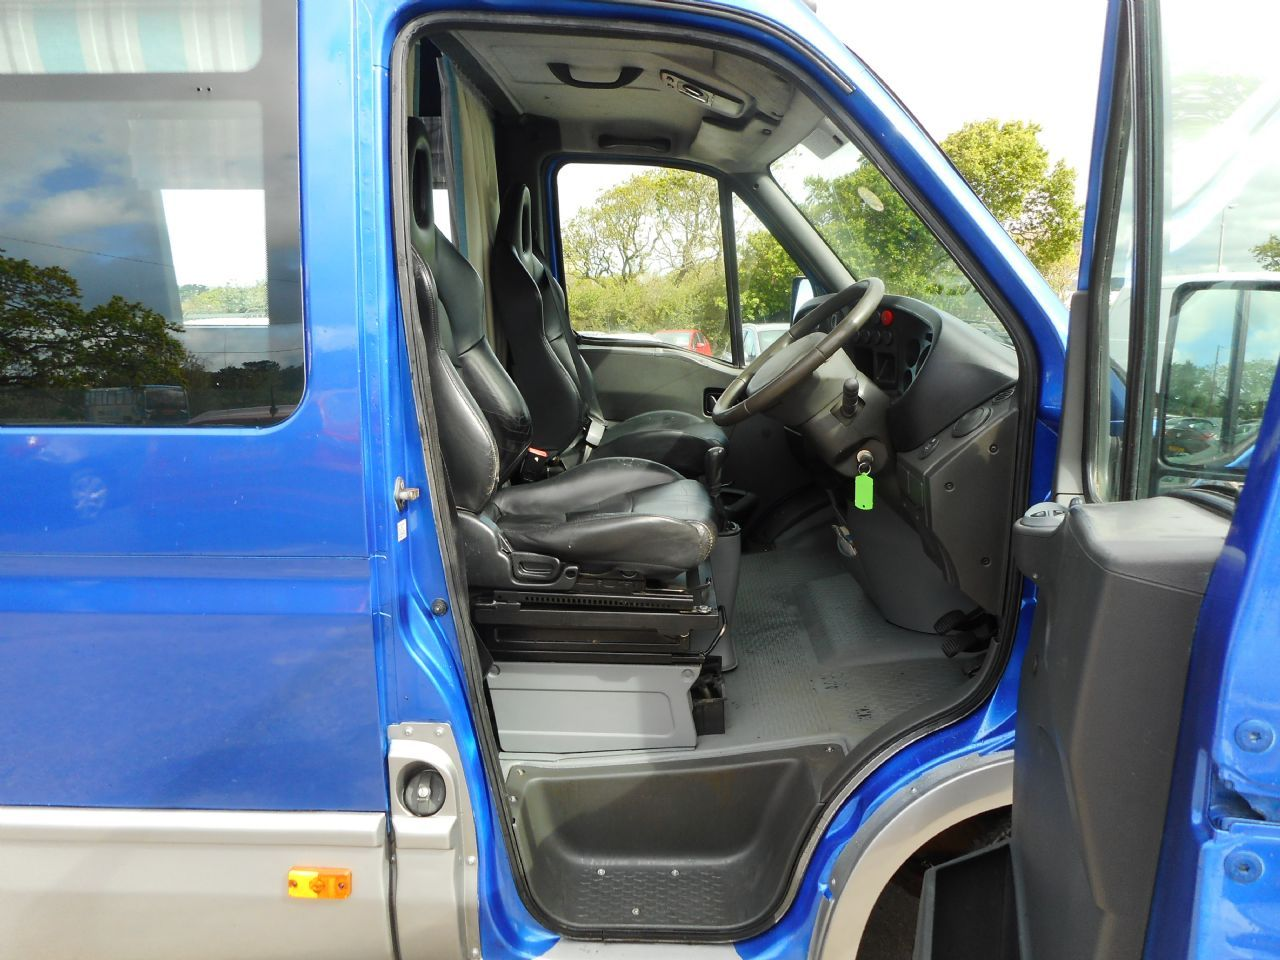 IVECO DAILY 35S12D W/B 3450 (2004) - Picture 9